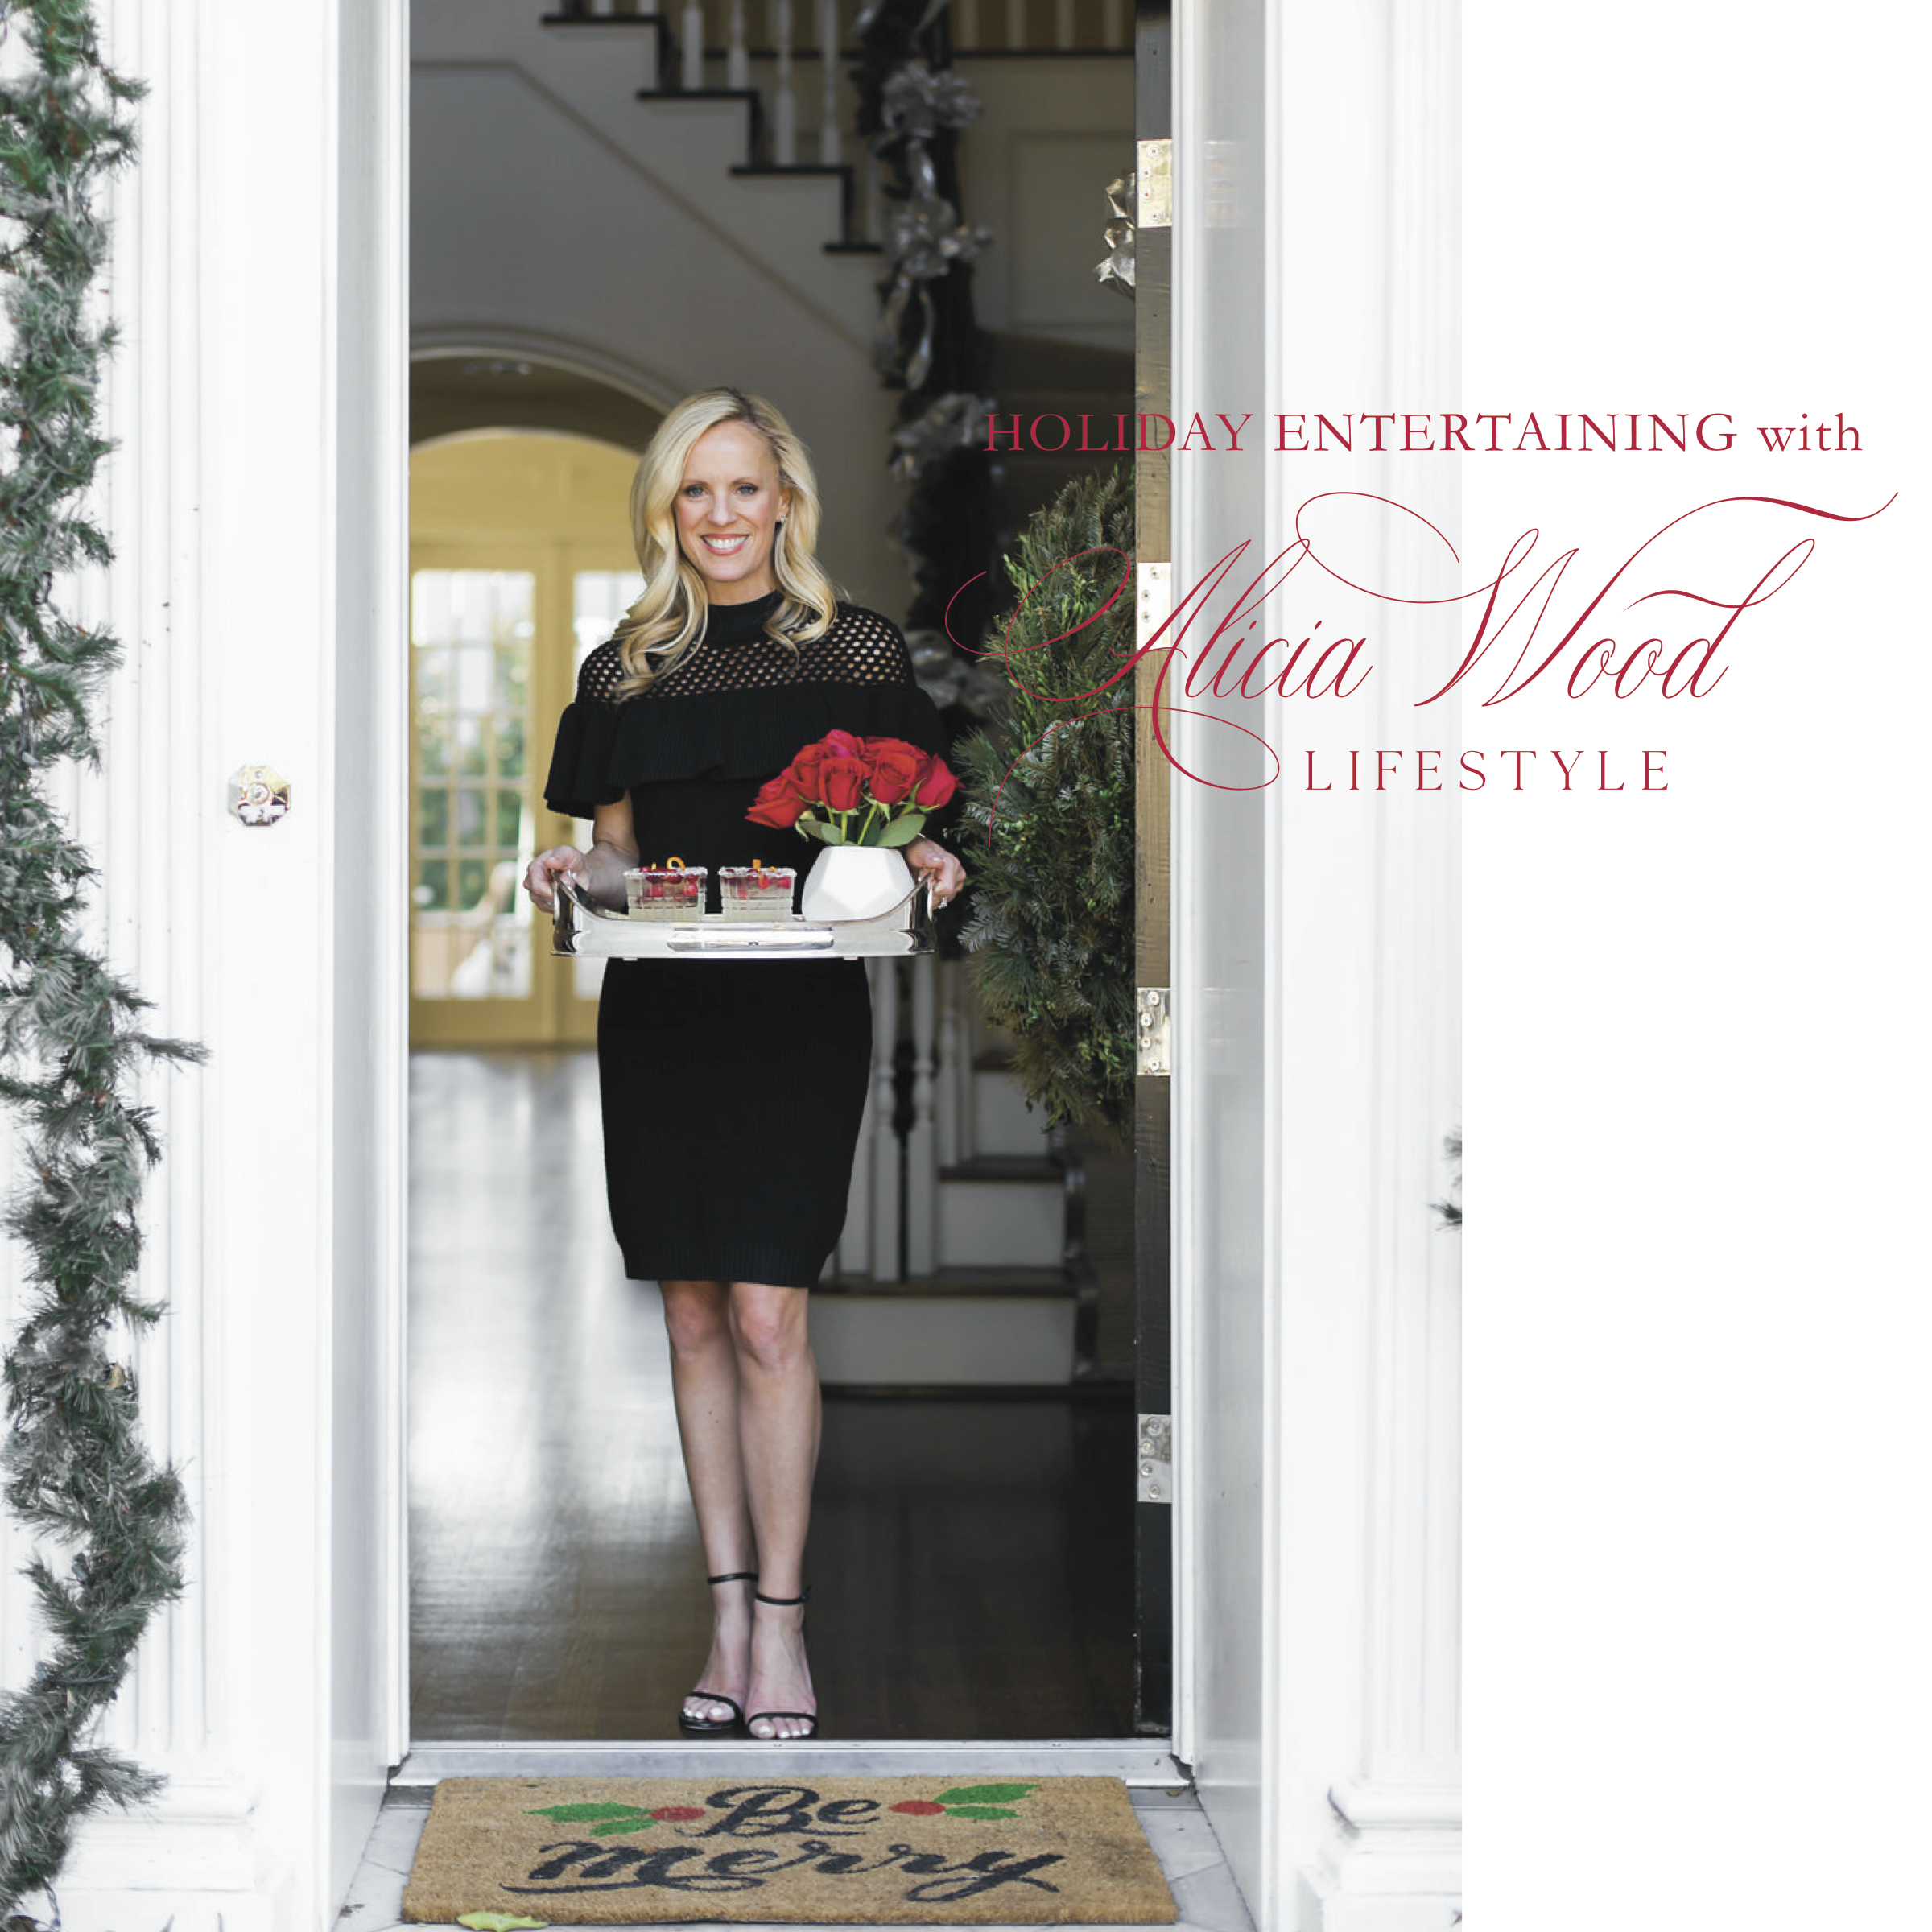 Alicia Wood, Dallas Lifestyle Expert, Free Holiday Entertaining eBook,